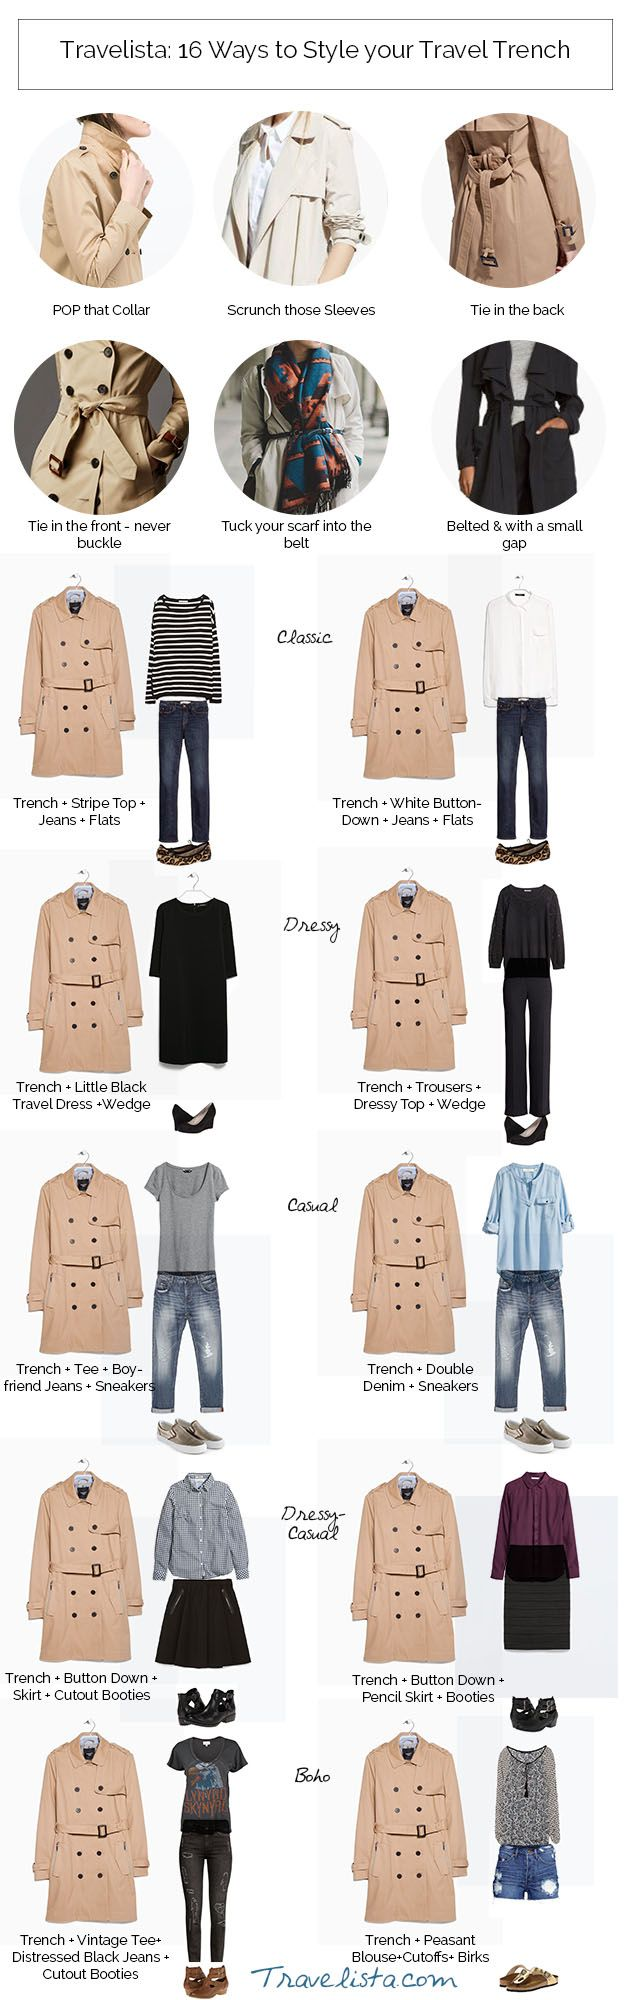 16 ways to style your travel trench coat | Travelista #Style #Wardrobe #Capsule